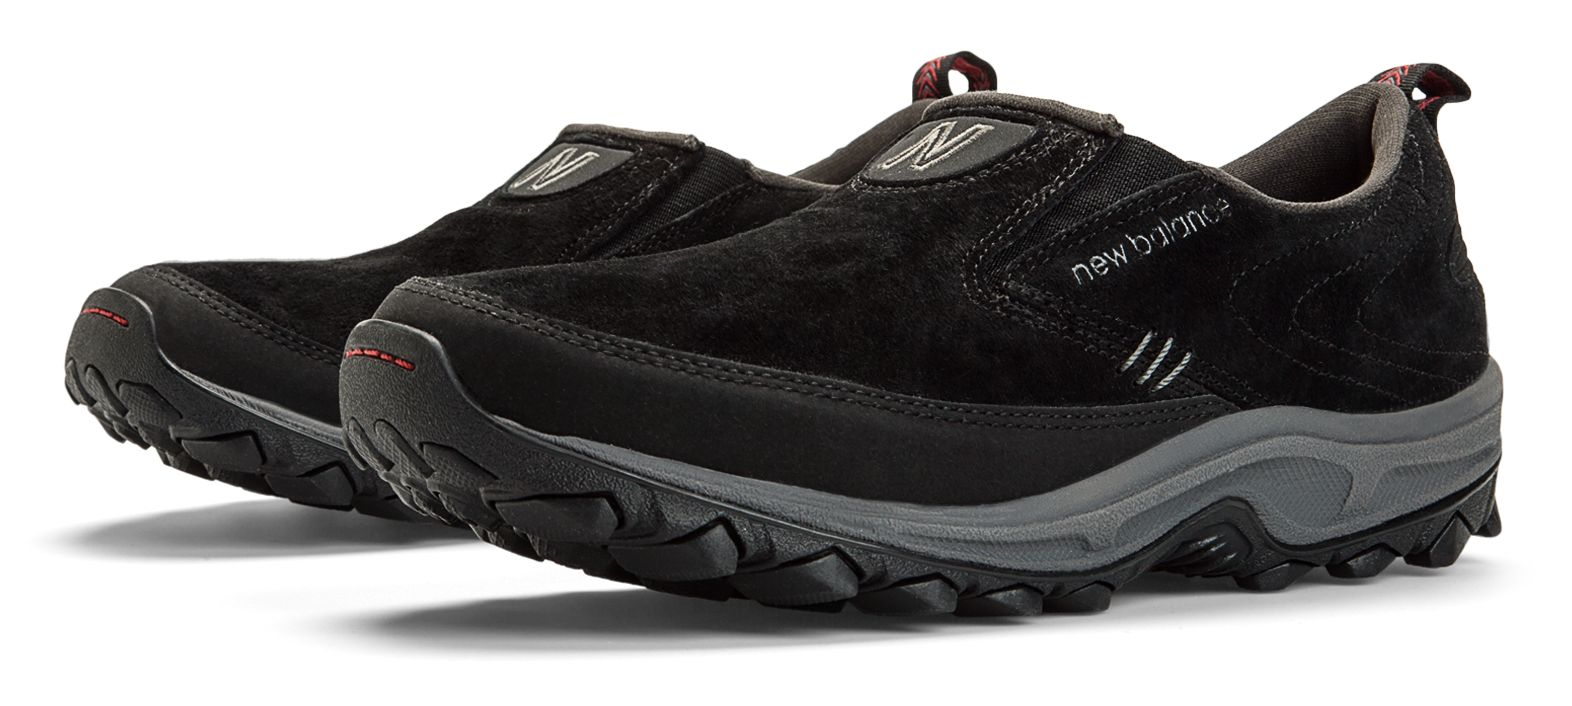 joes new balance outlet coupon code 10 off new balance 800 series